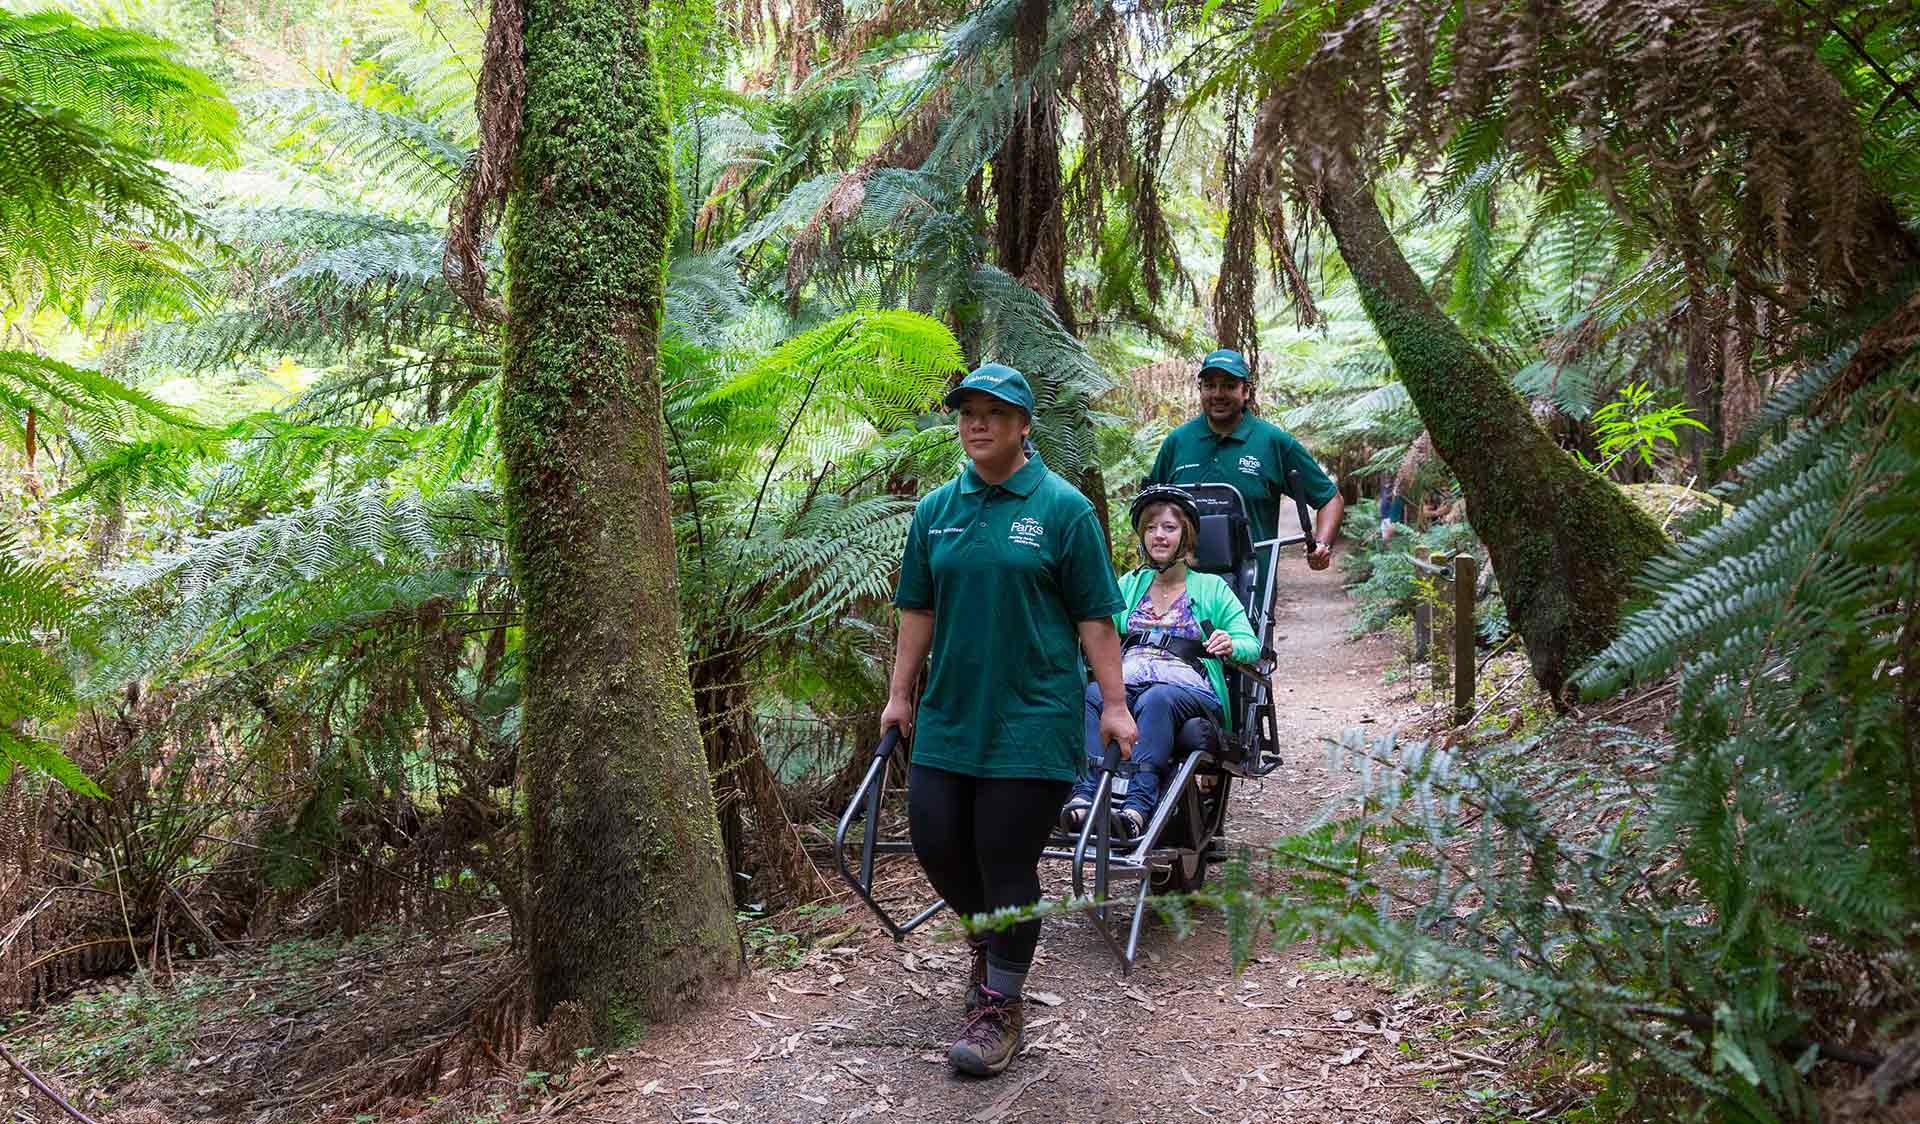 Two people assist a third person in an all terrain wheelchair along a track surrounded by nature